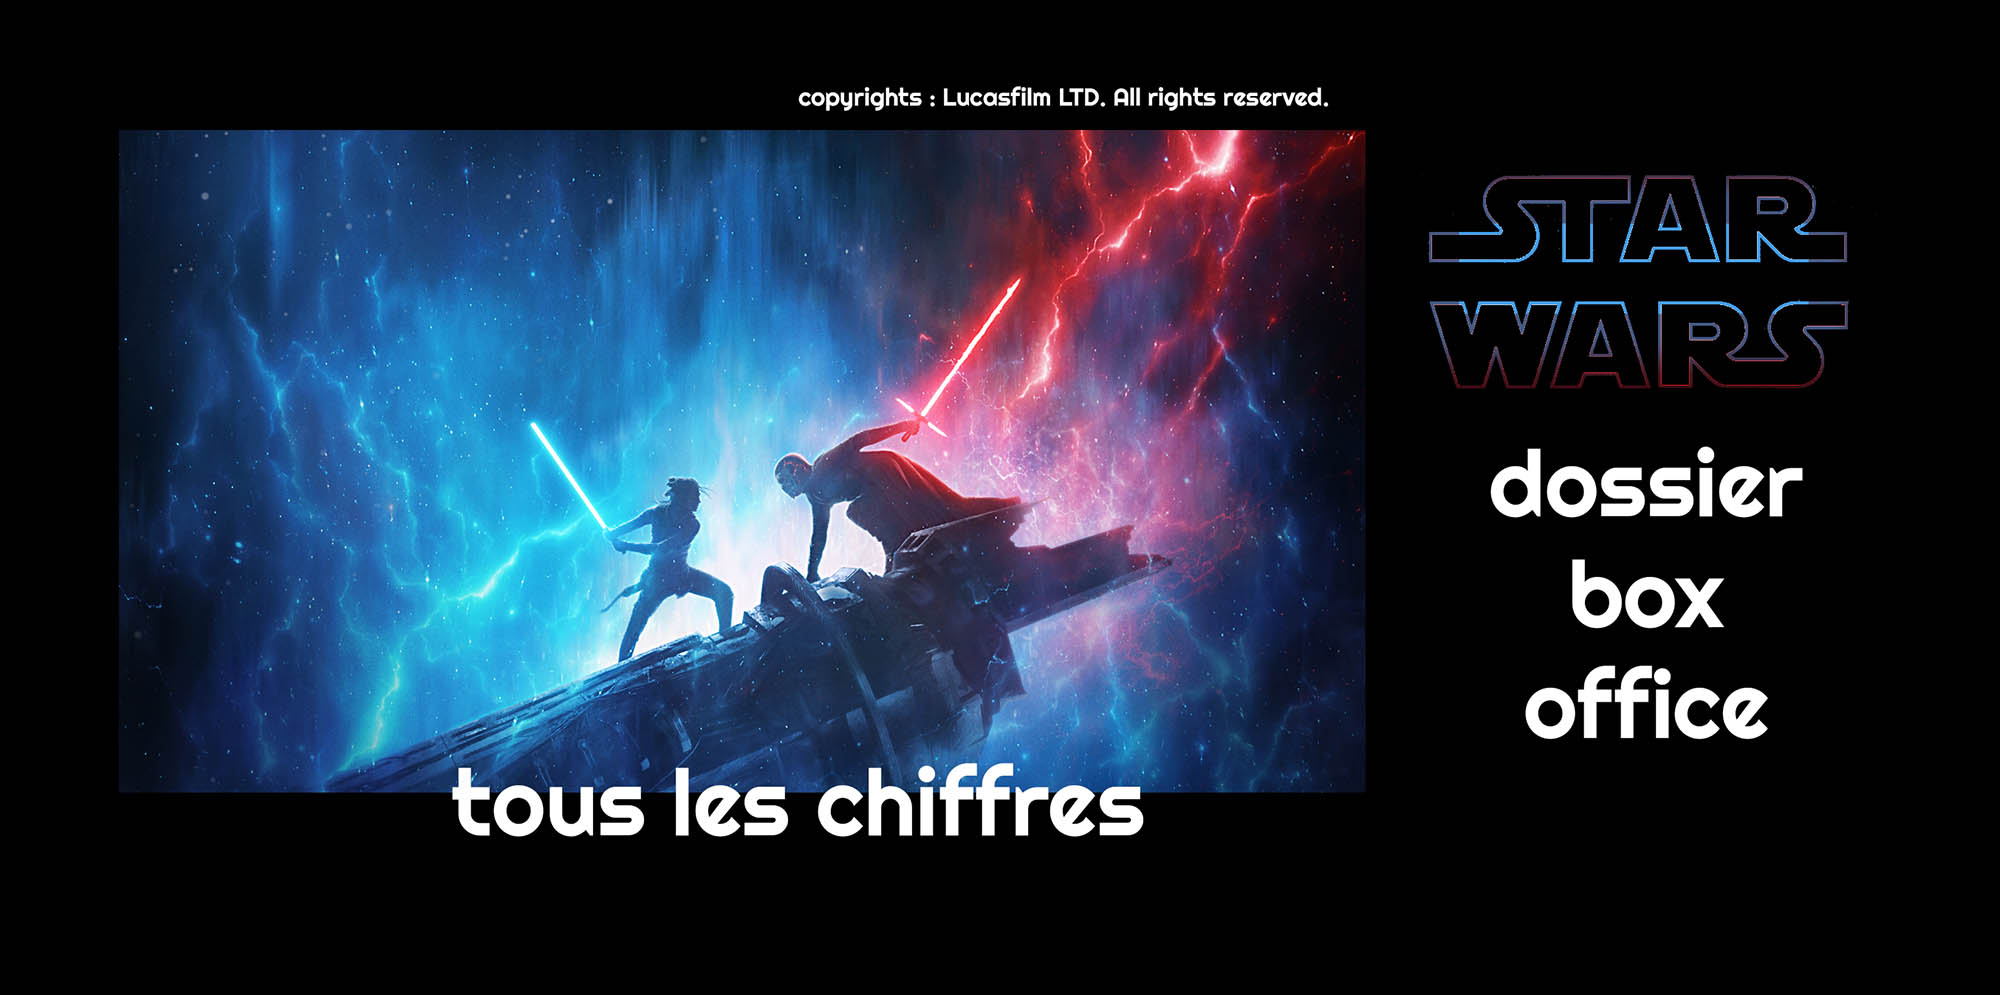 Box-office Stars Wars épisode 9 l'ascension de Skywalker